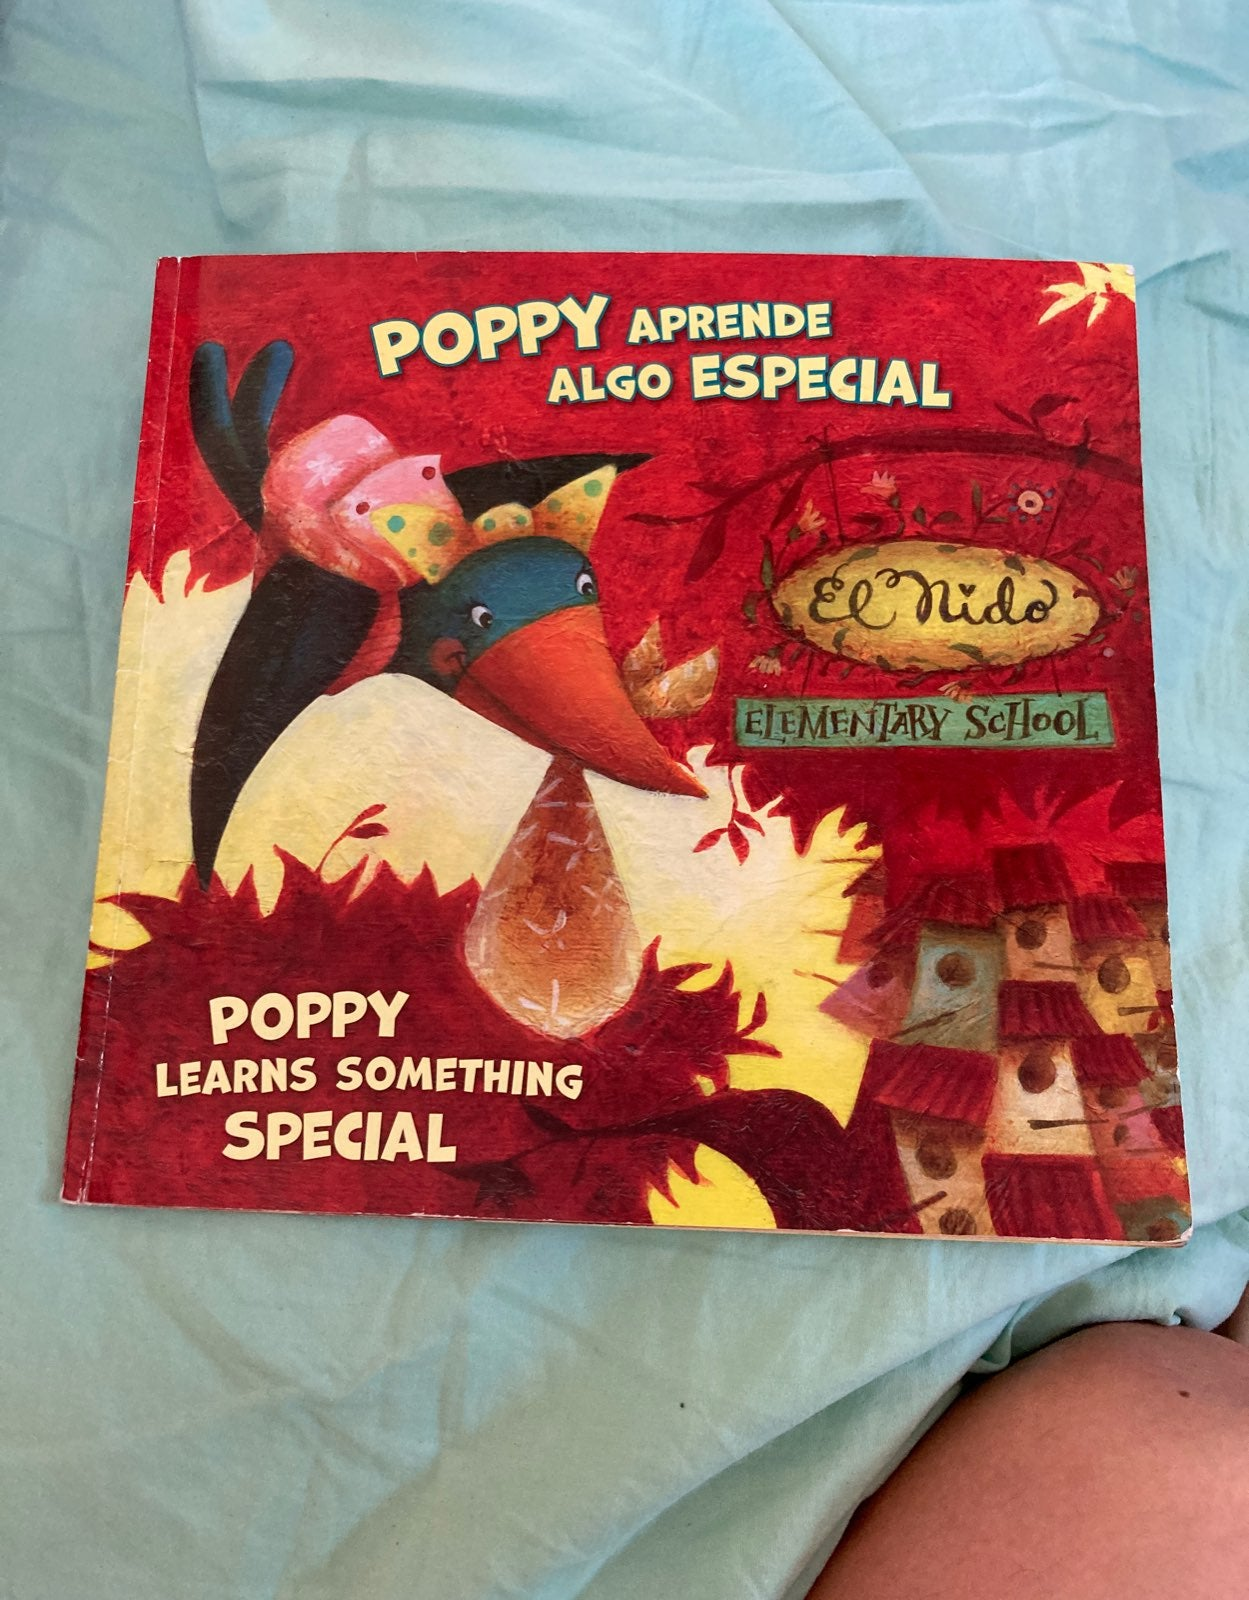 Poppy learn some thing special Spanish t